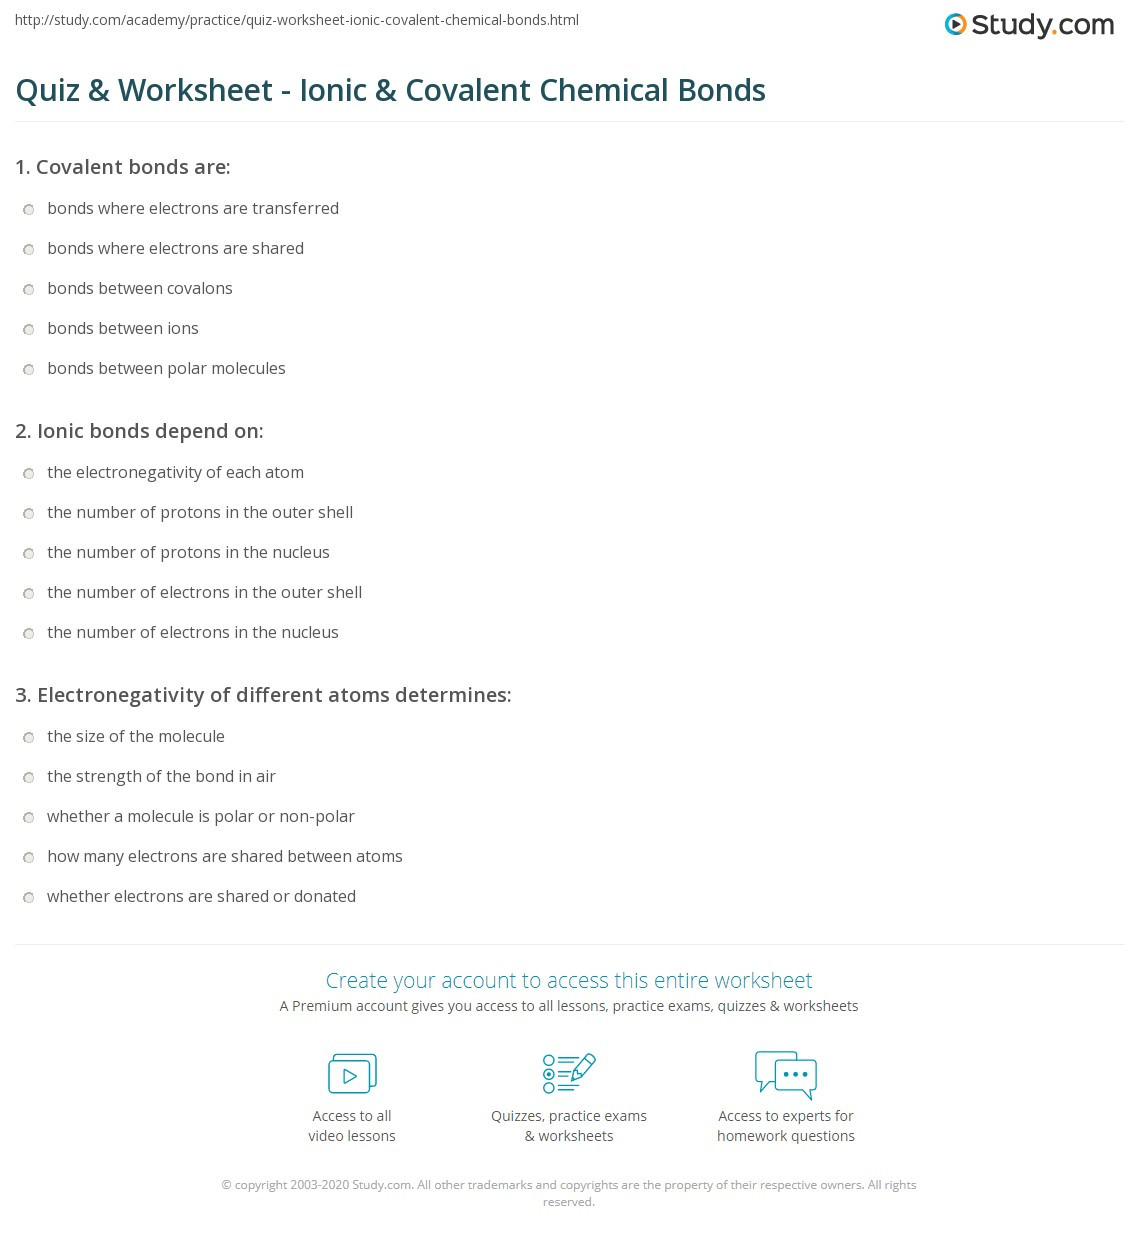 30 Ionic And Covalent Bonds Worksheet